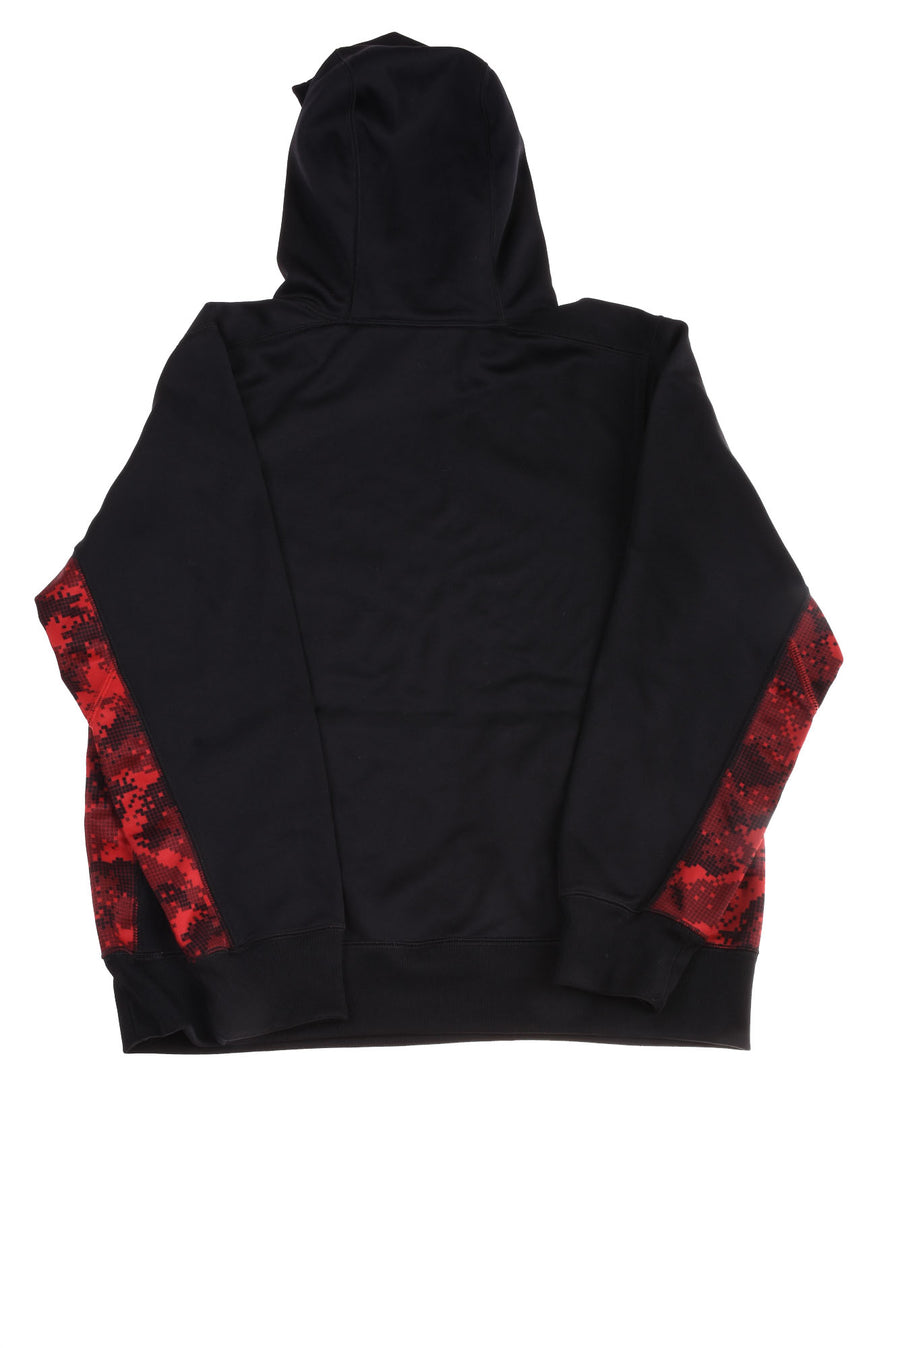 USED Nike Boy's Pullover Hoodie X-Large Black & Red